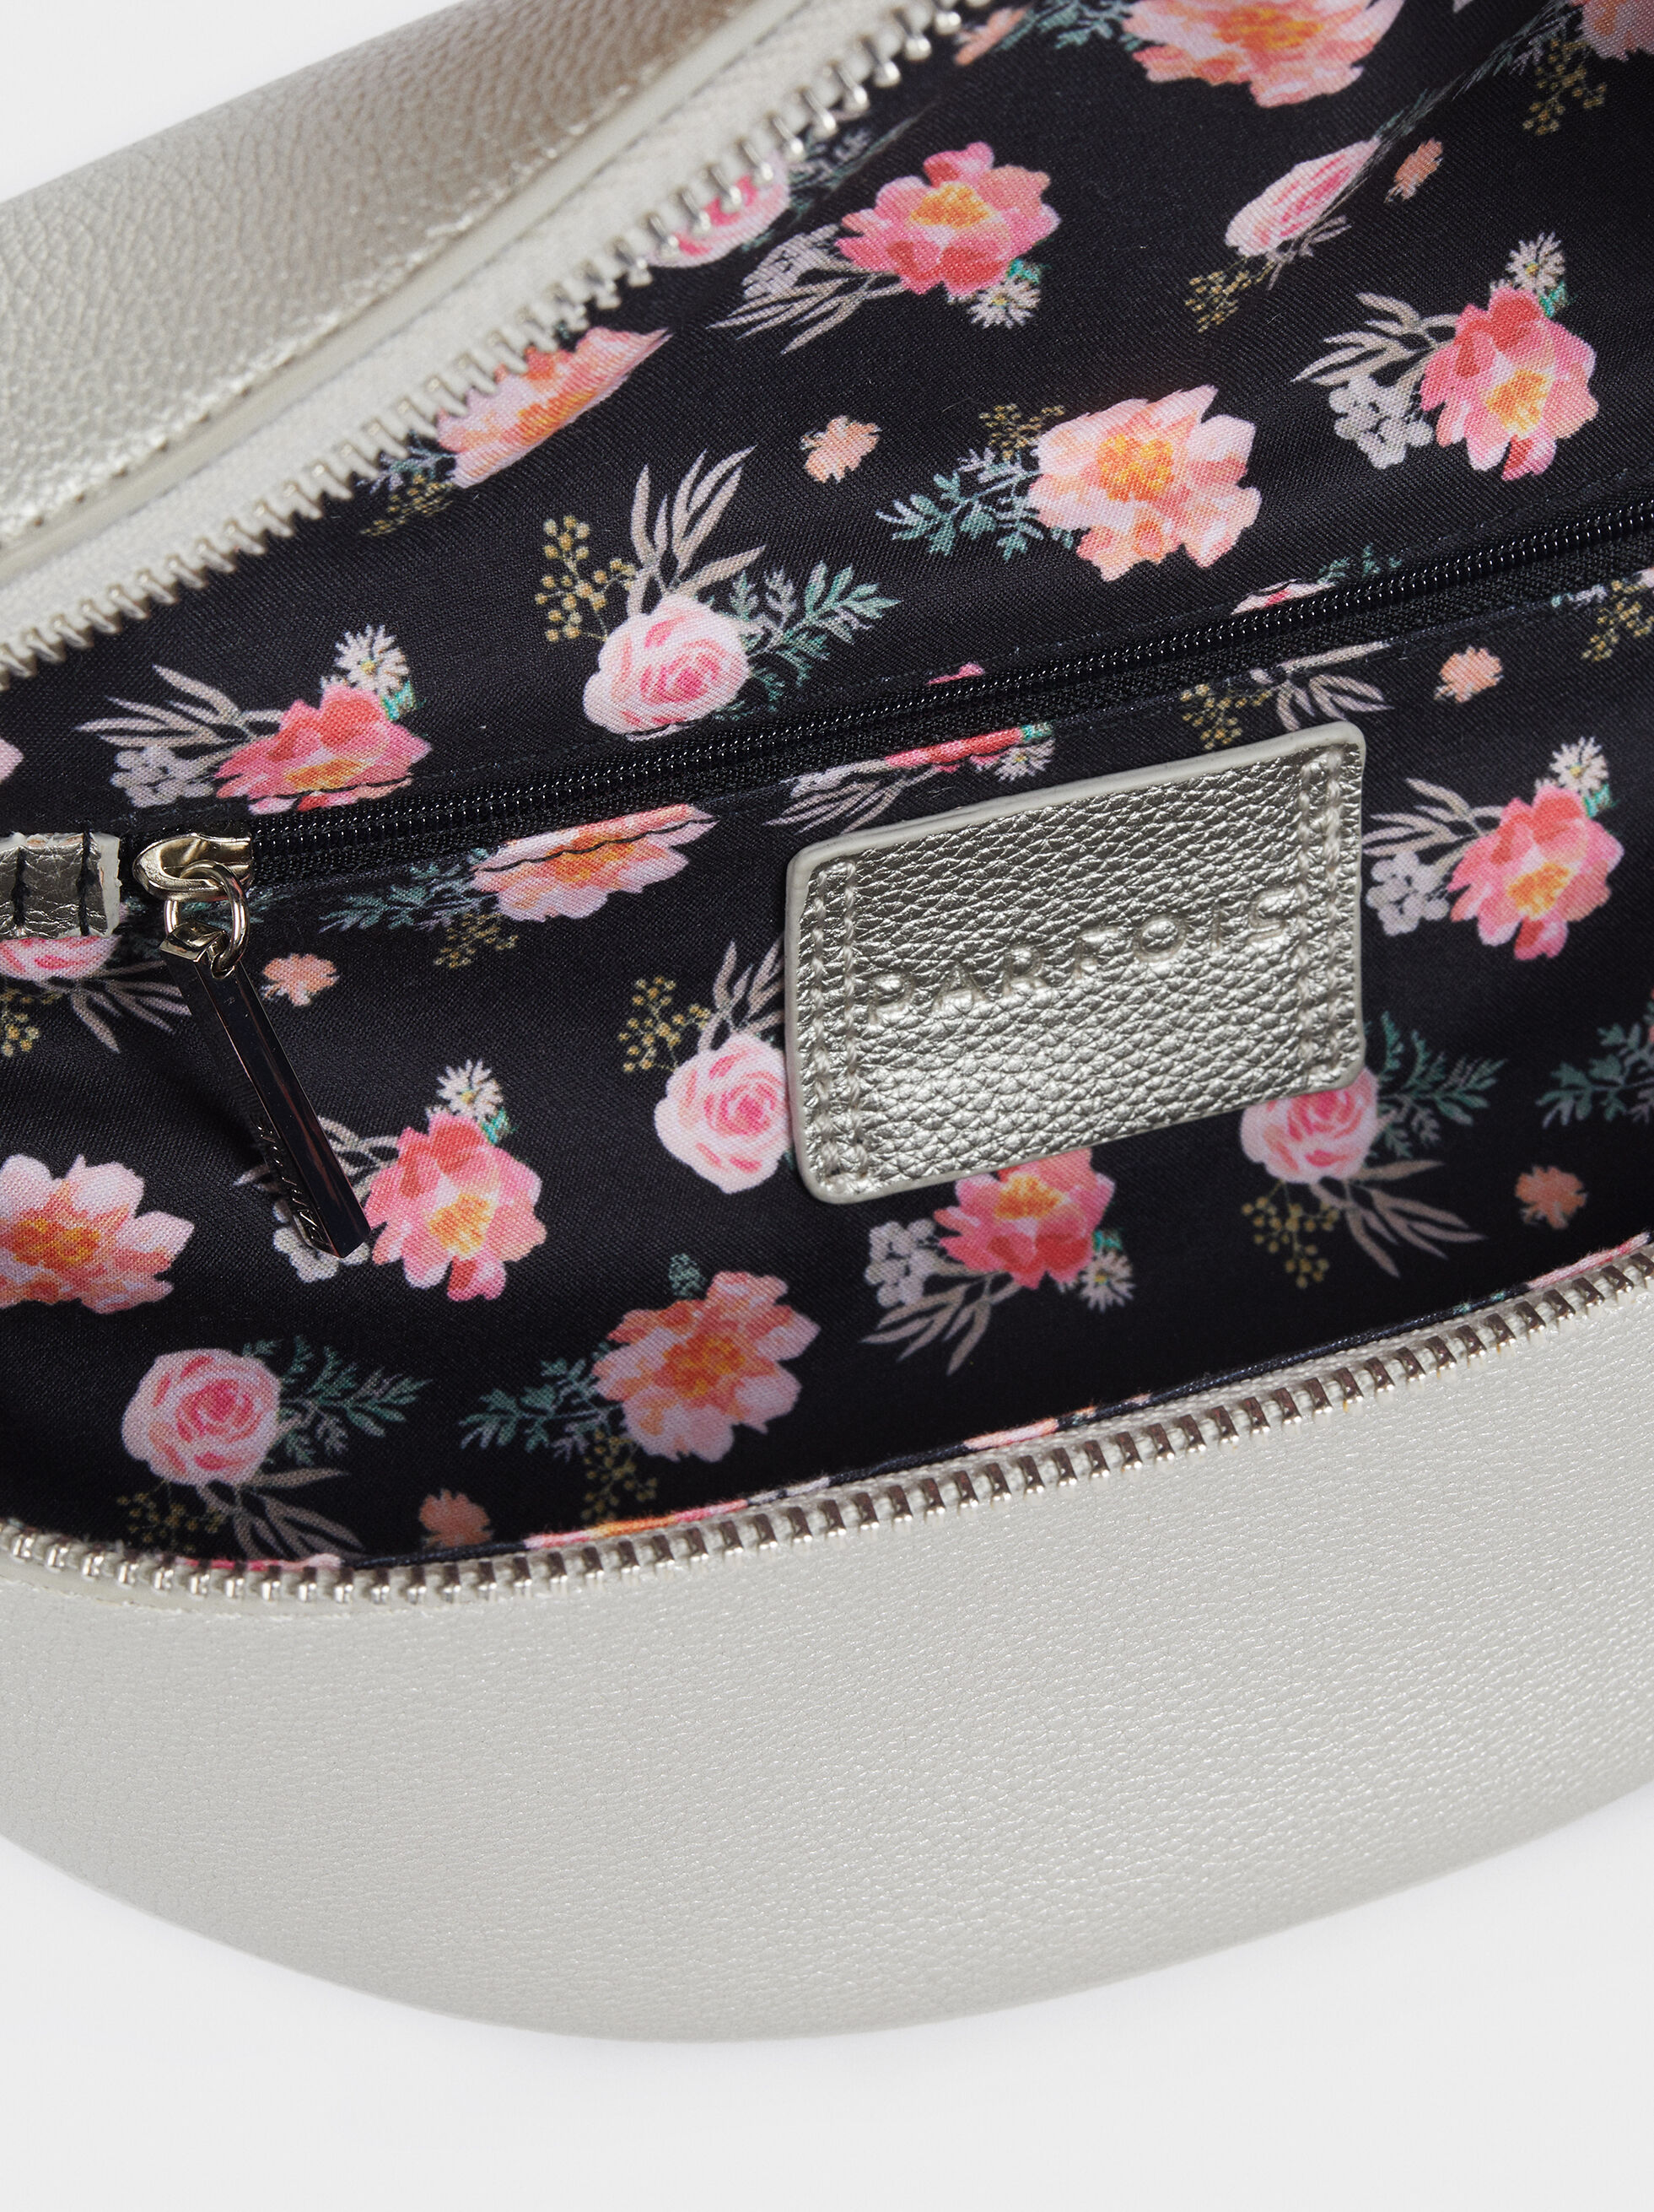 Crossbody Belt Bag With Floral Detailing, Silver, hi-res